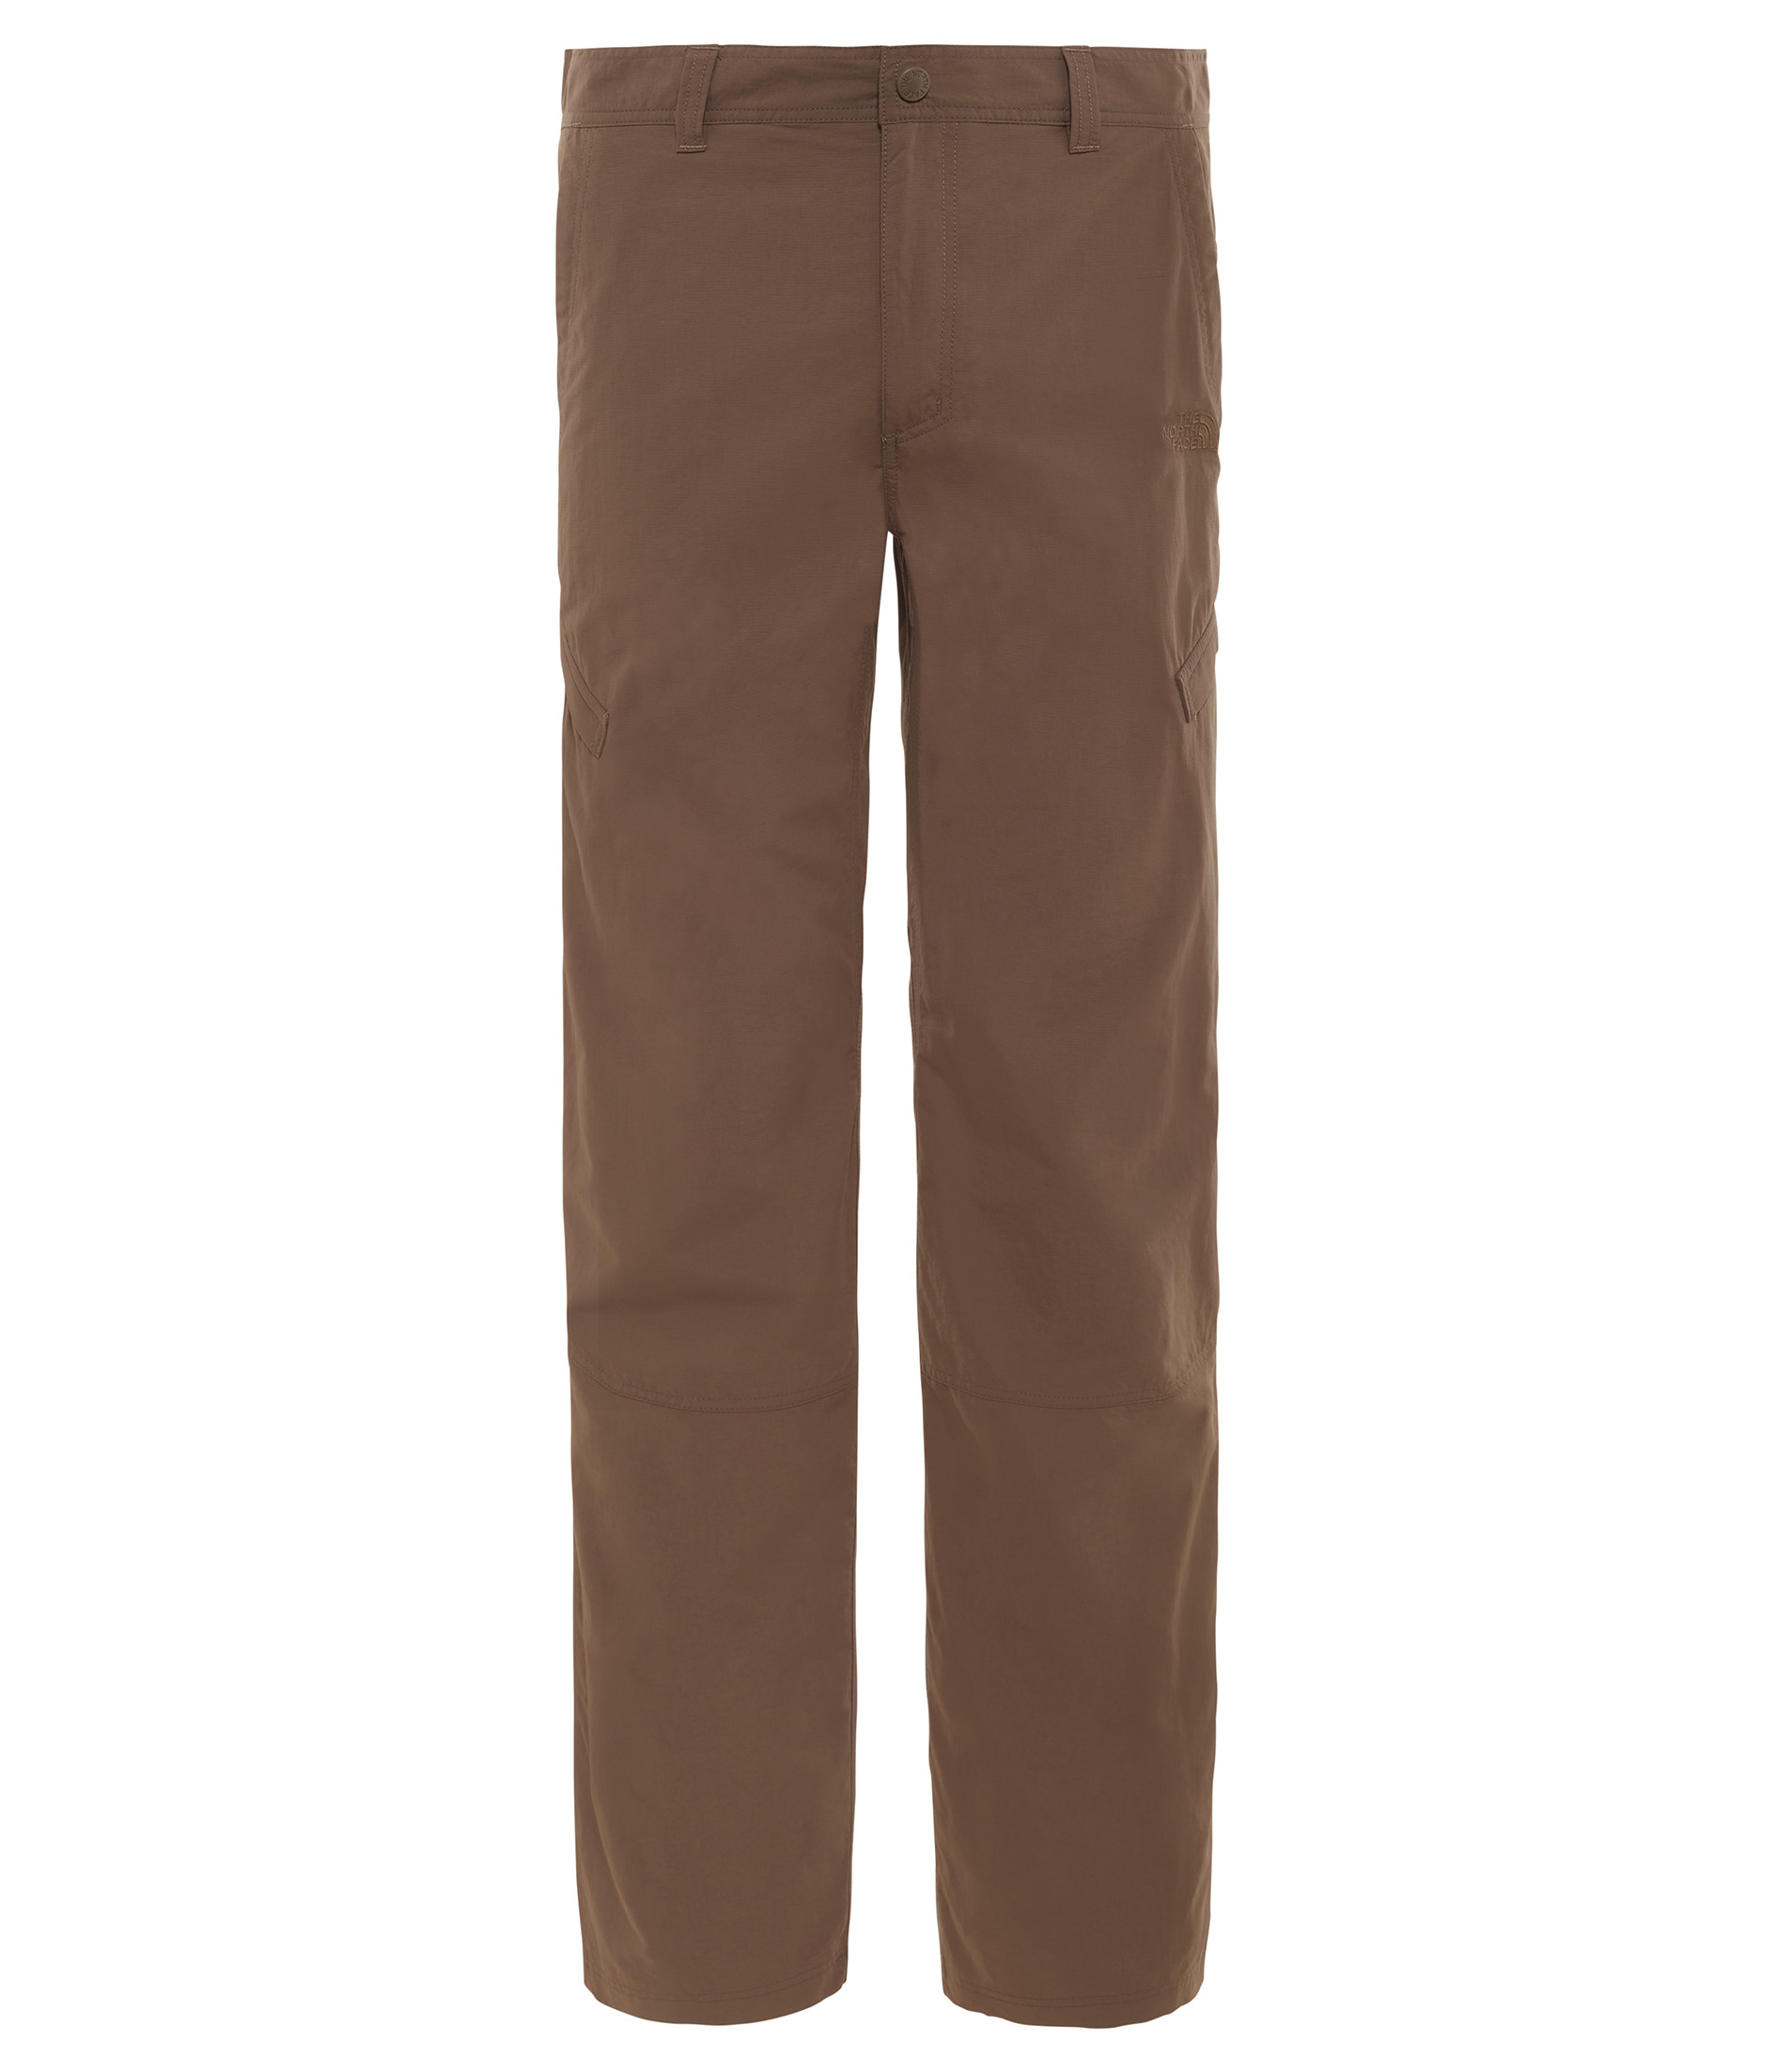 THE NORTH FACE M HORIZON PANT WEIMARANER BROWN velikost: 28